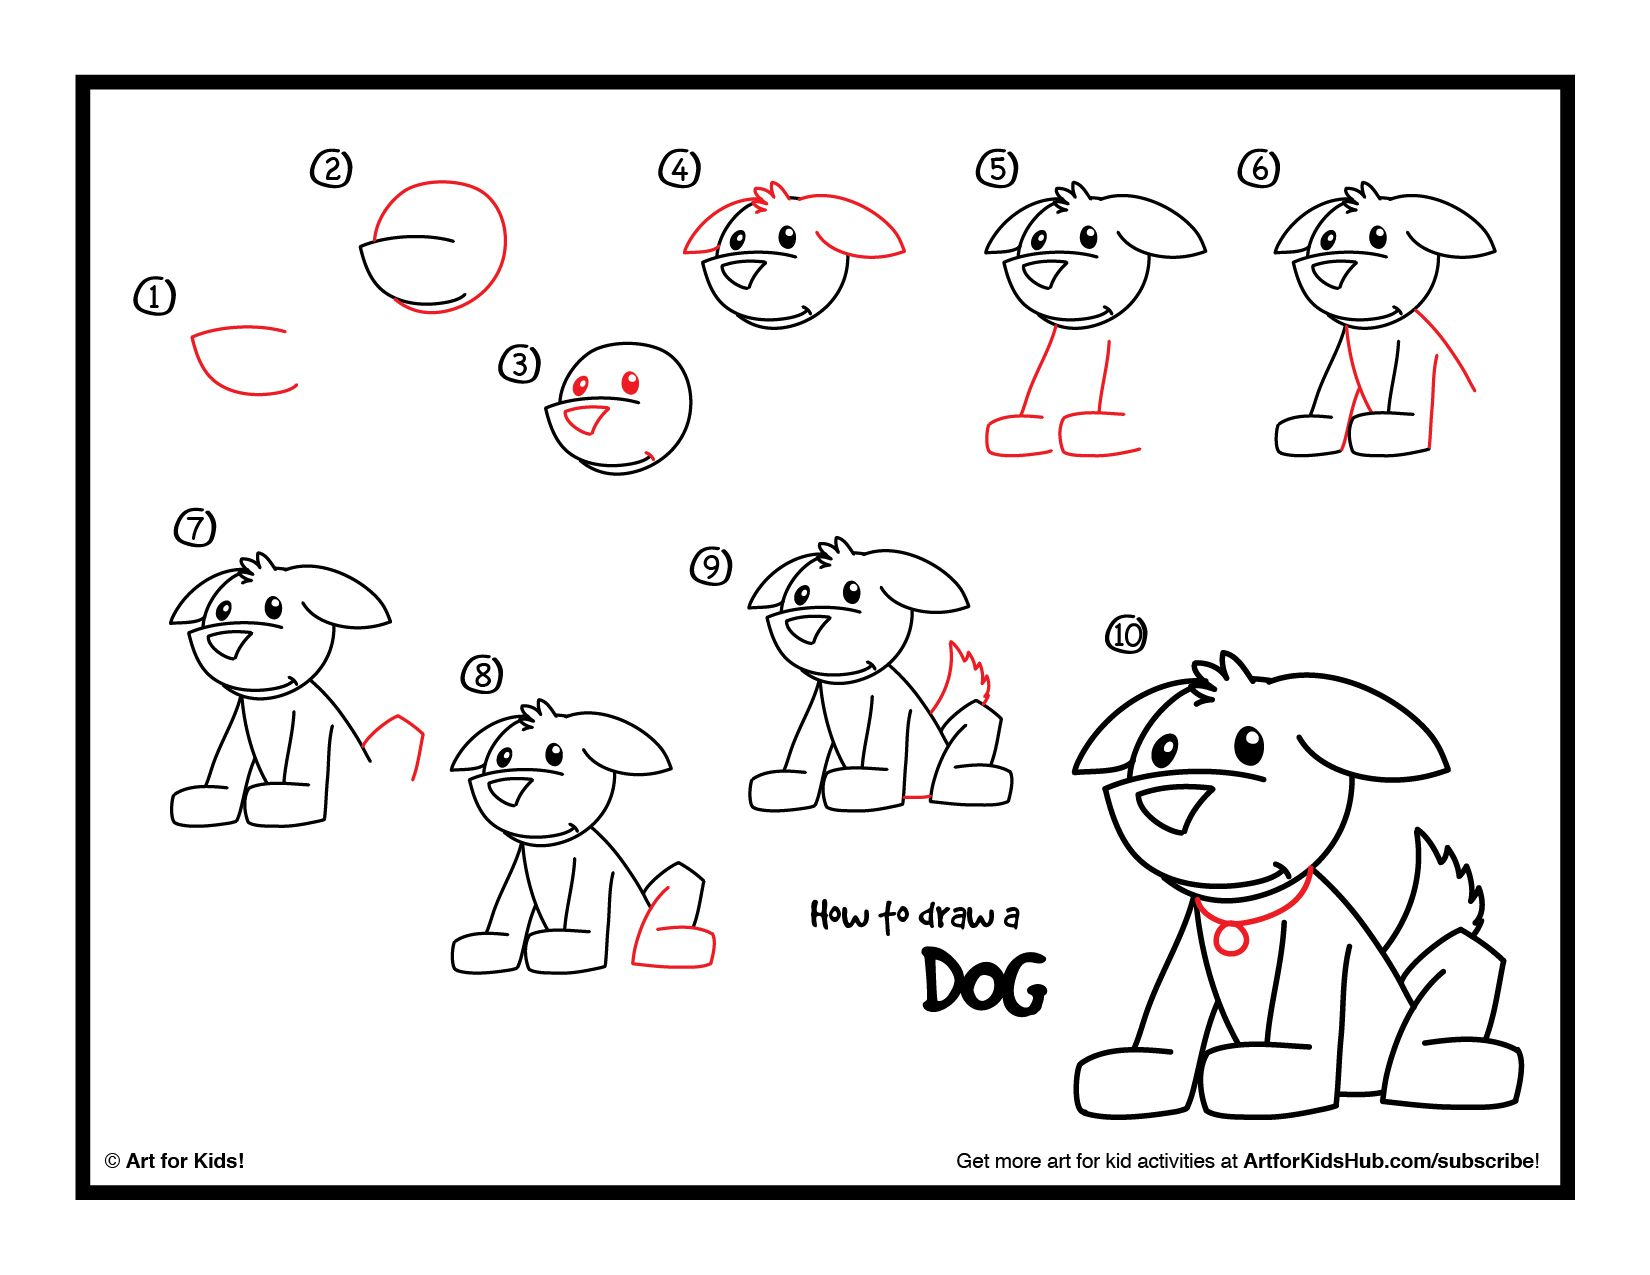 How To Draw A Dog - Art For Kids Hub - | Dog drawing for ...